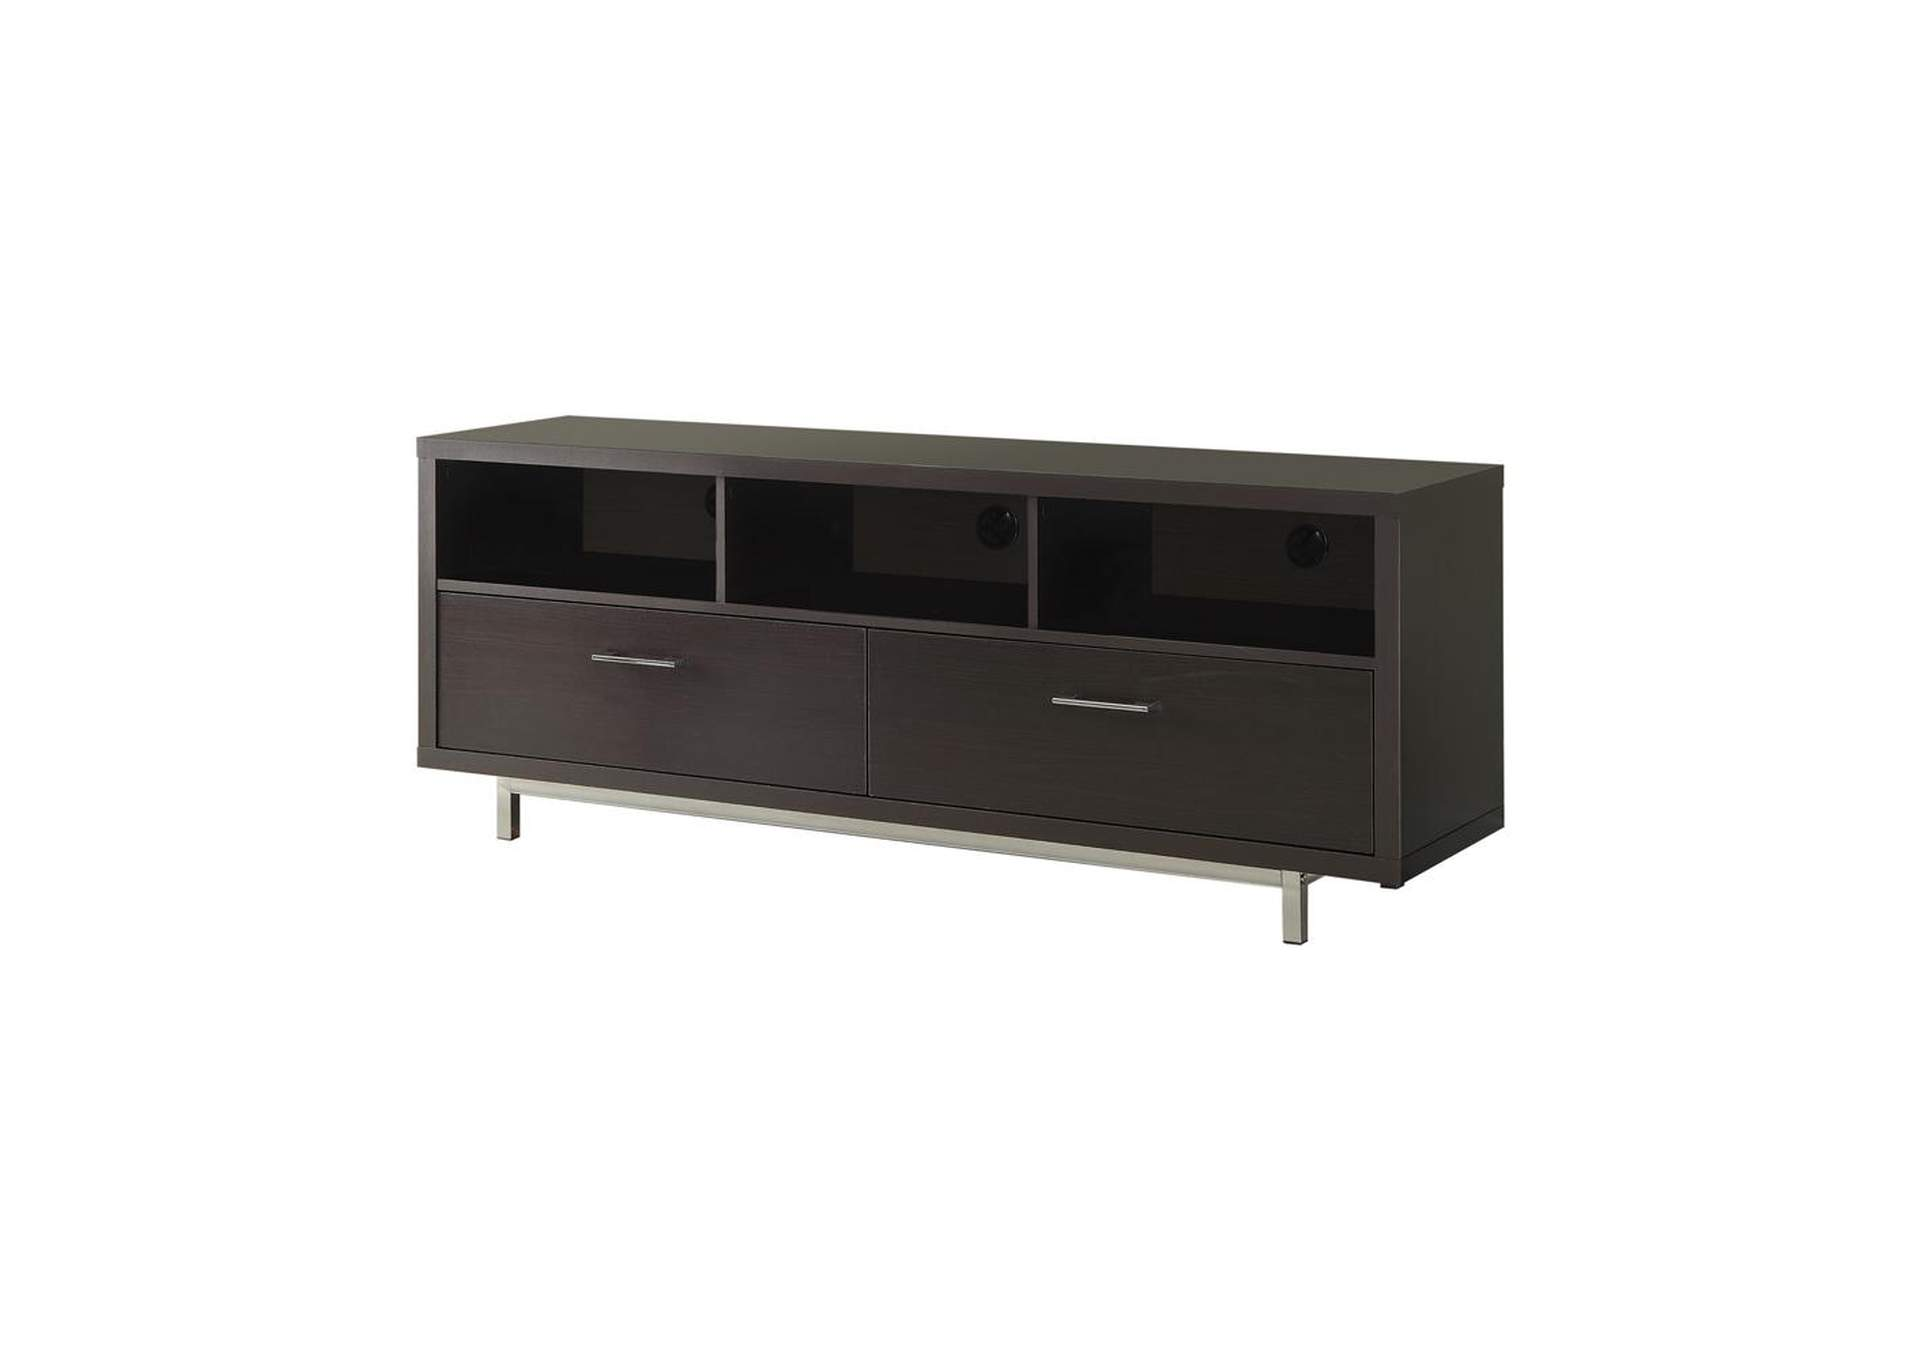 Cappuccino Transitional Cappuccino TV Console,Coaster Furniture